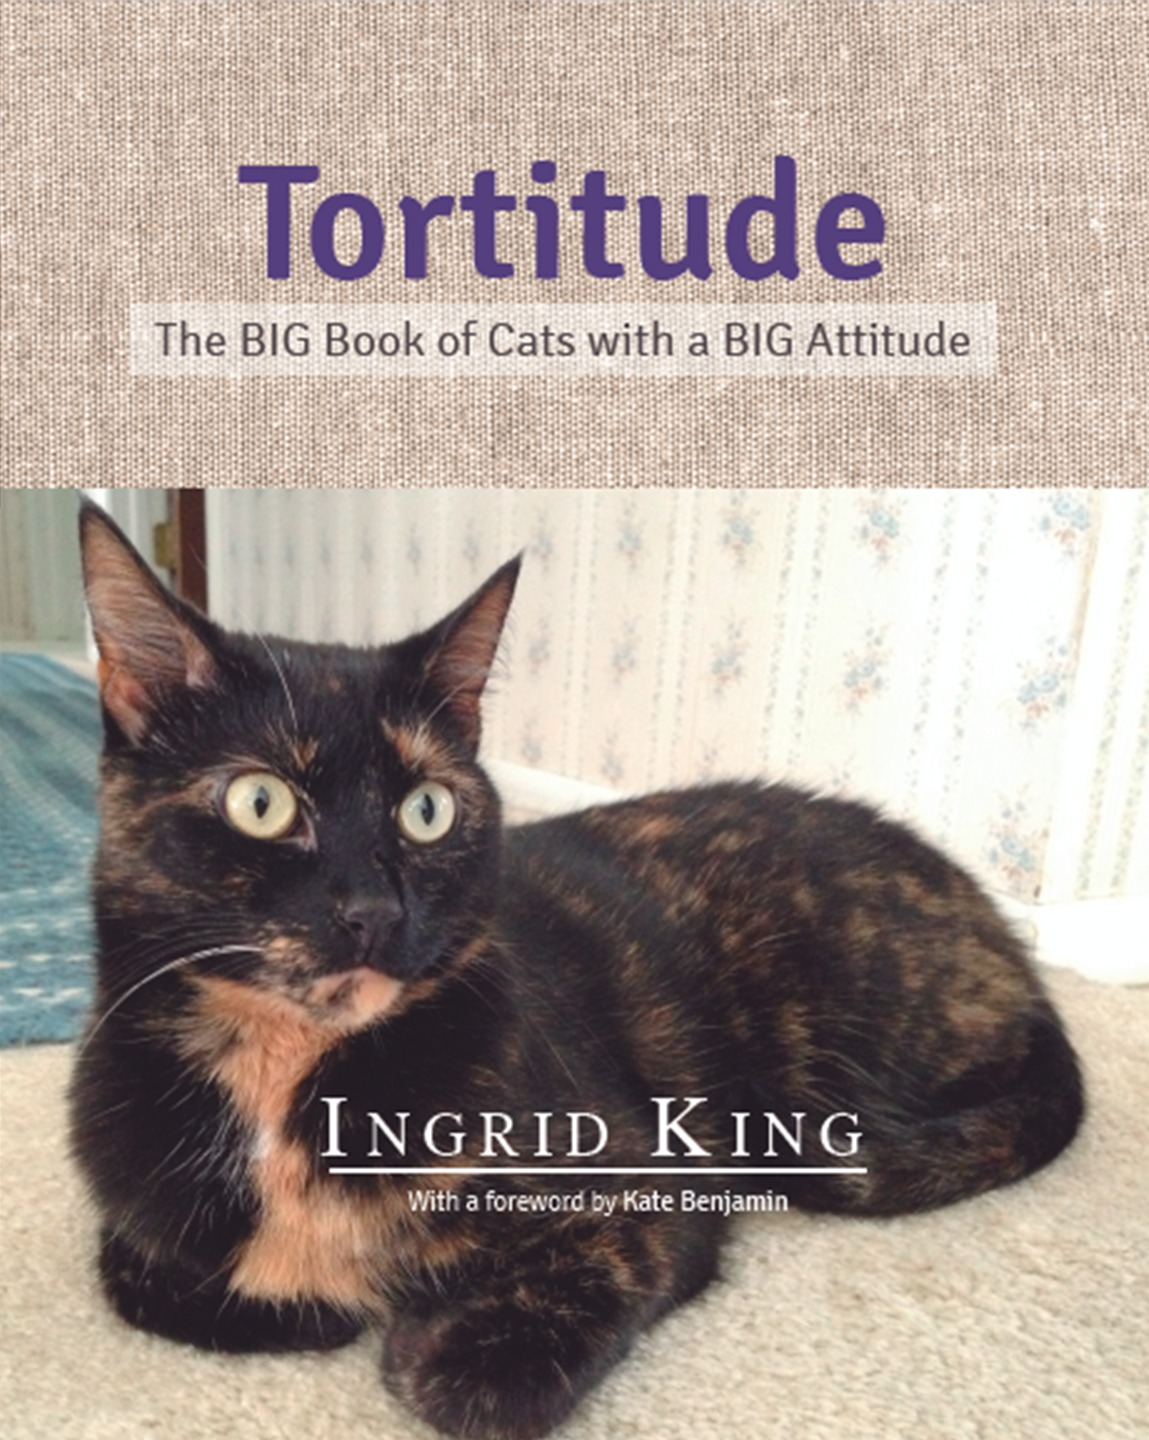 Book reviews about Tortoiseshell cats